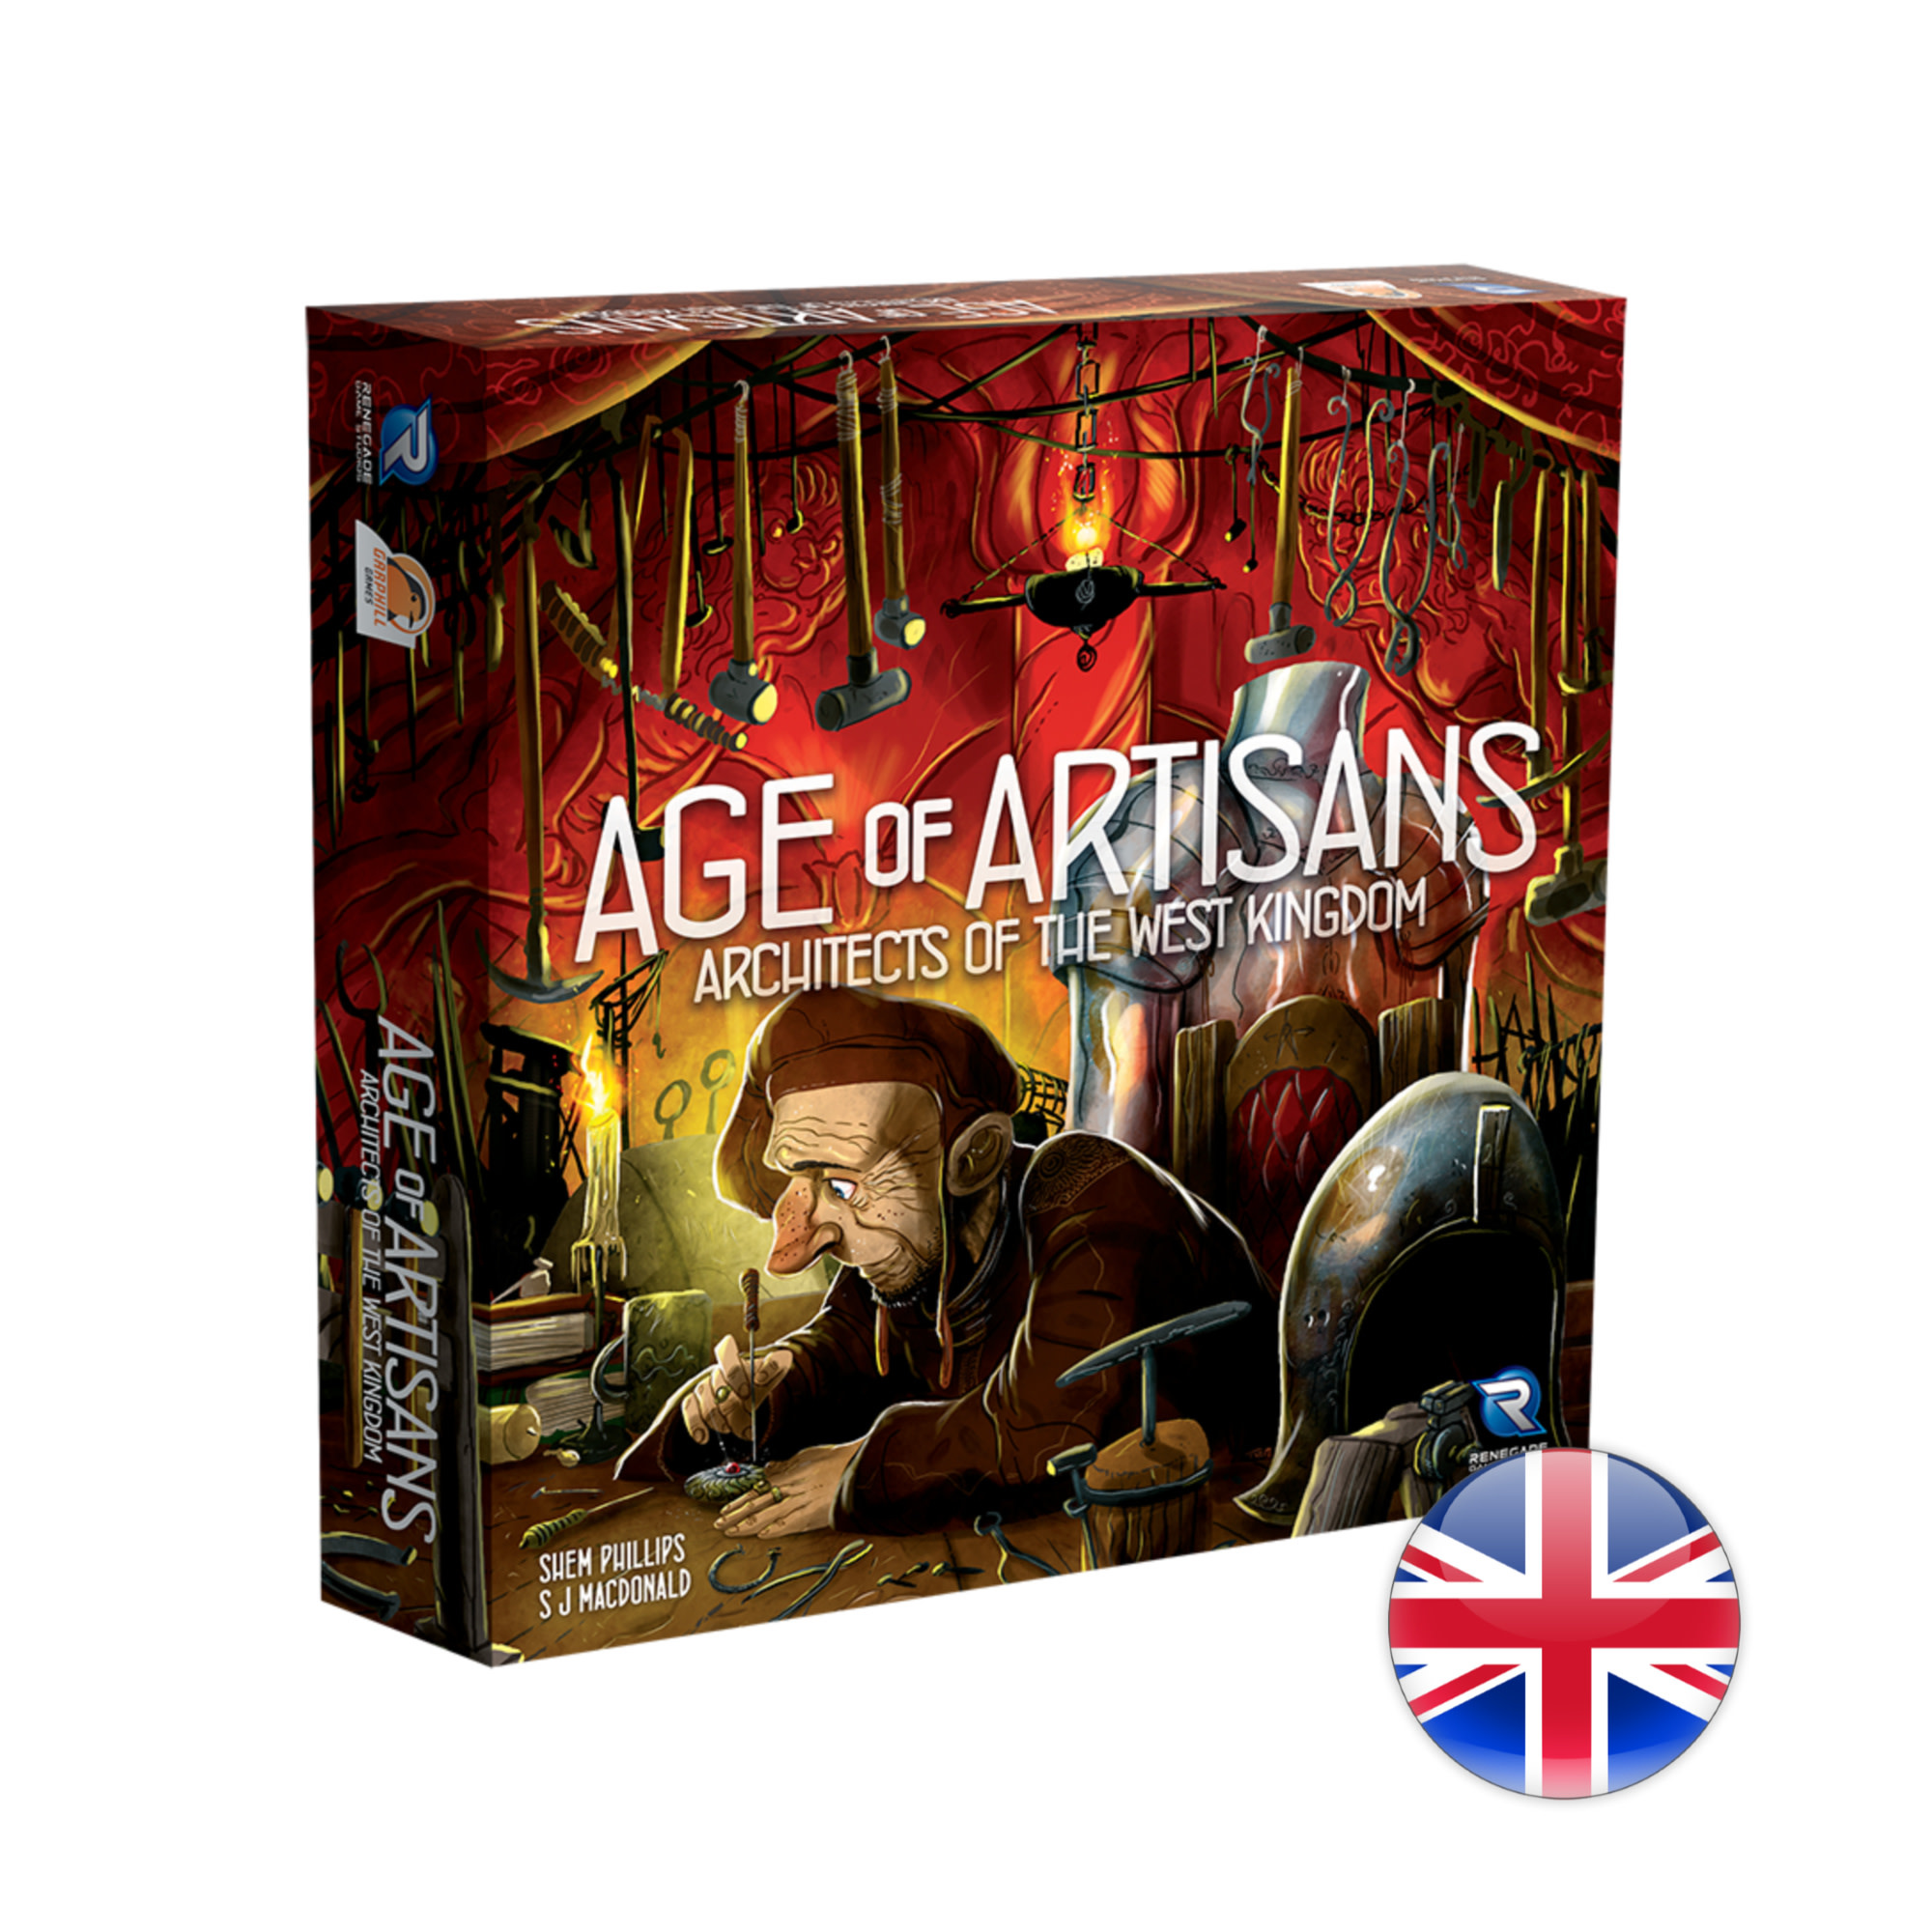 Renegade Game Studios Architects of the West Kingdom Age of Artisans